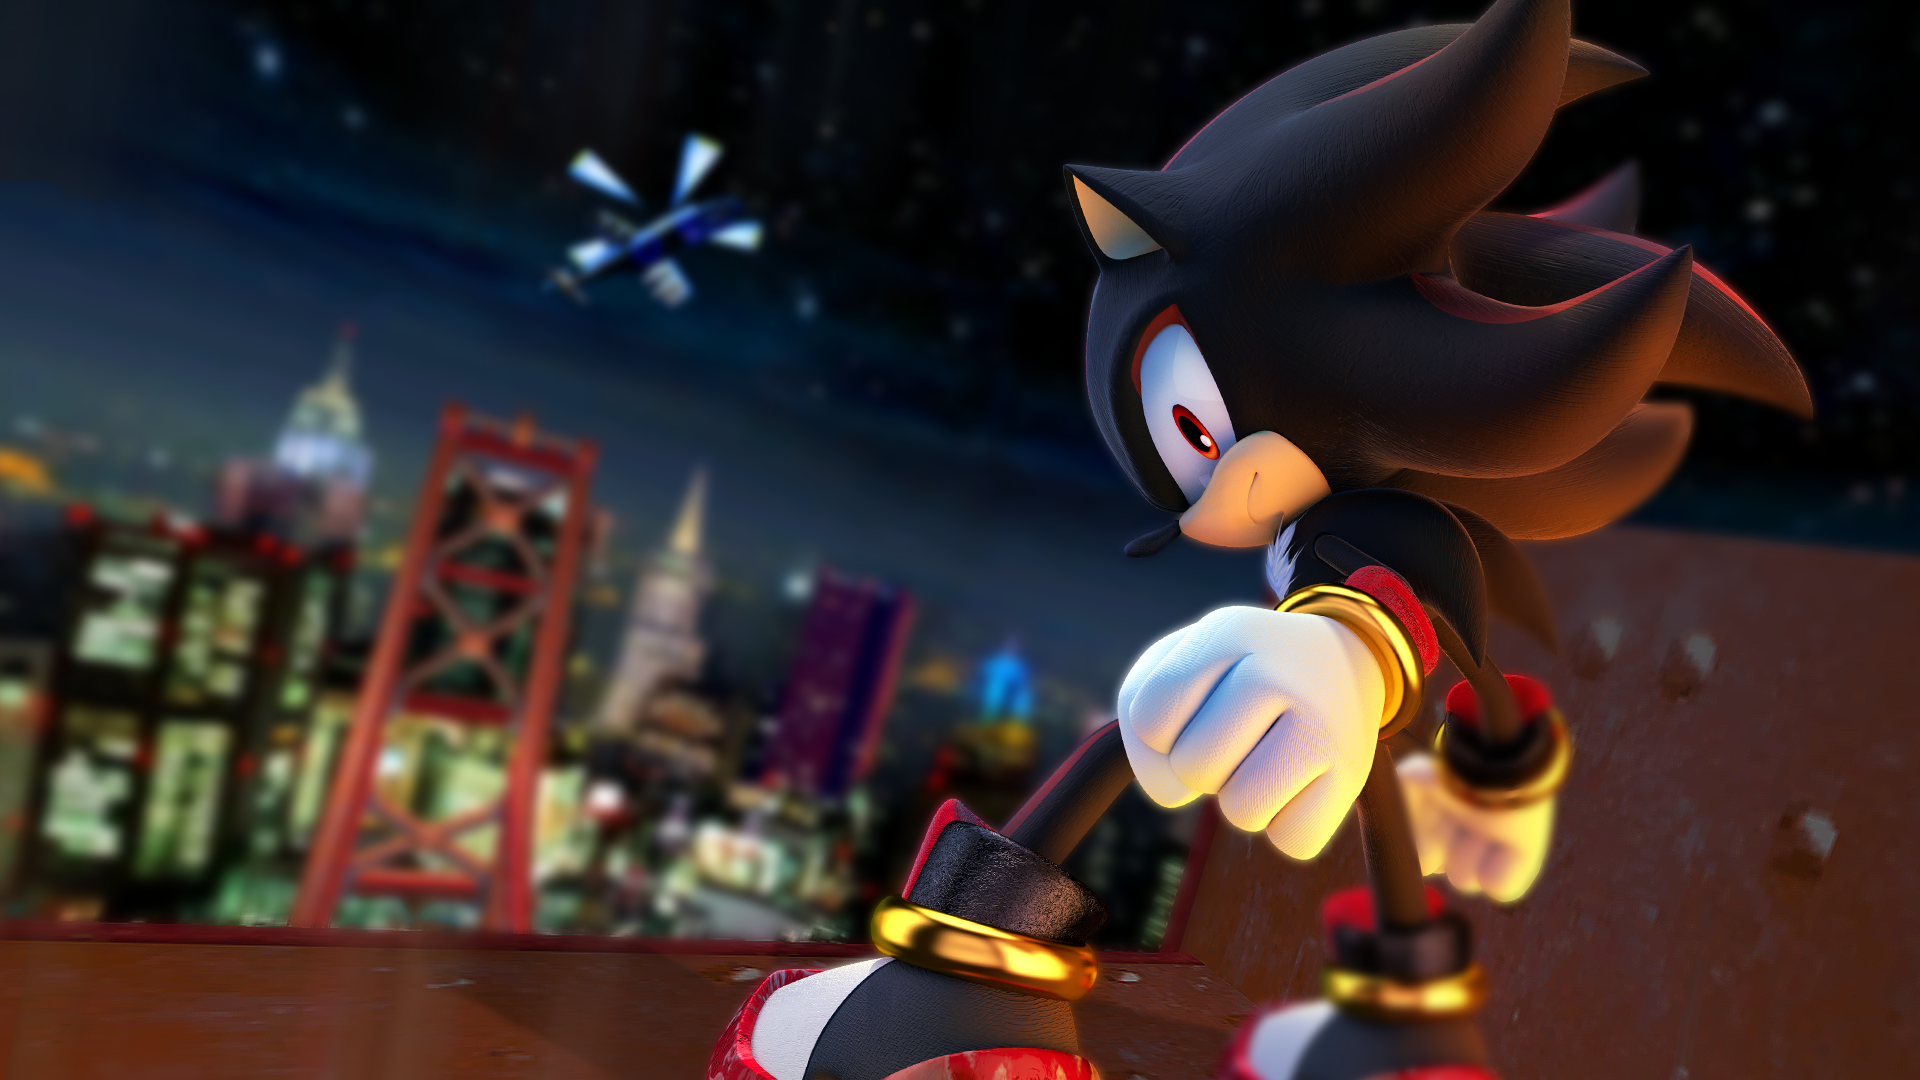 14 Shadow The Hedgehog HD Wallpapers | Background Images ...